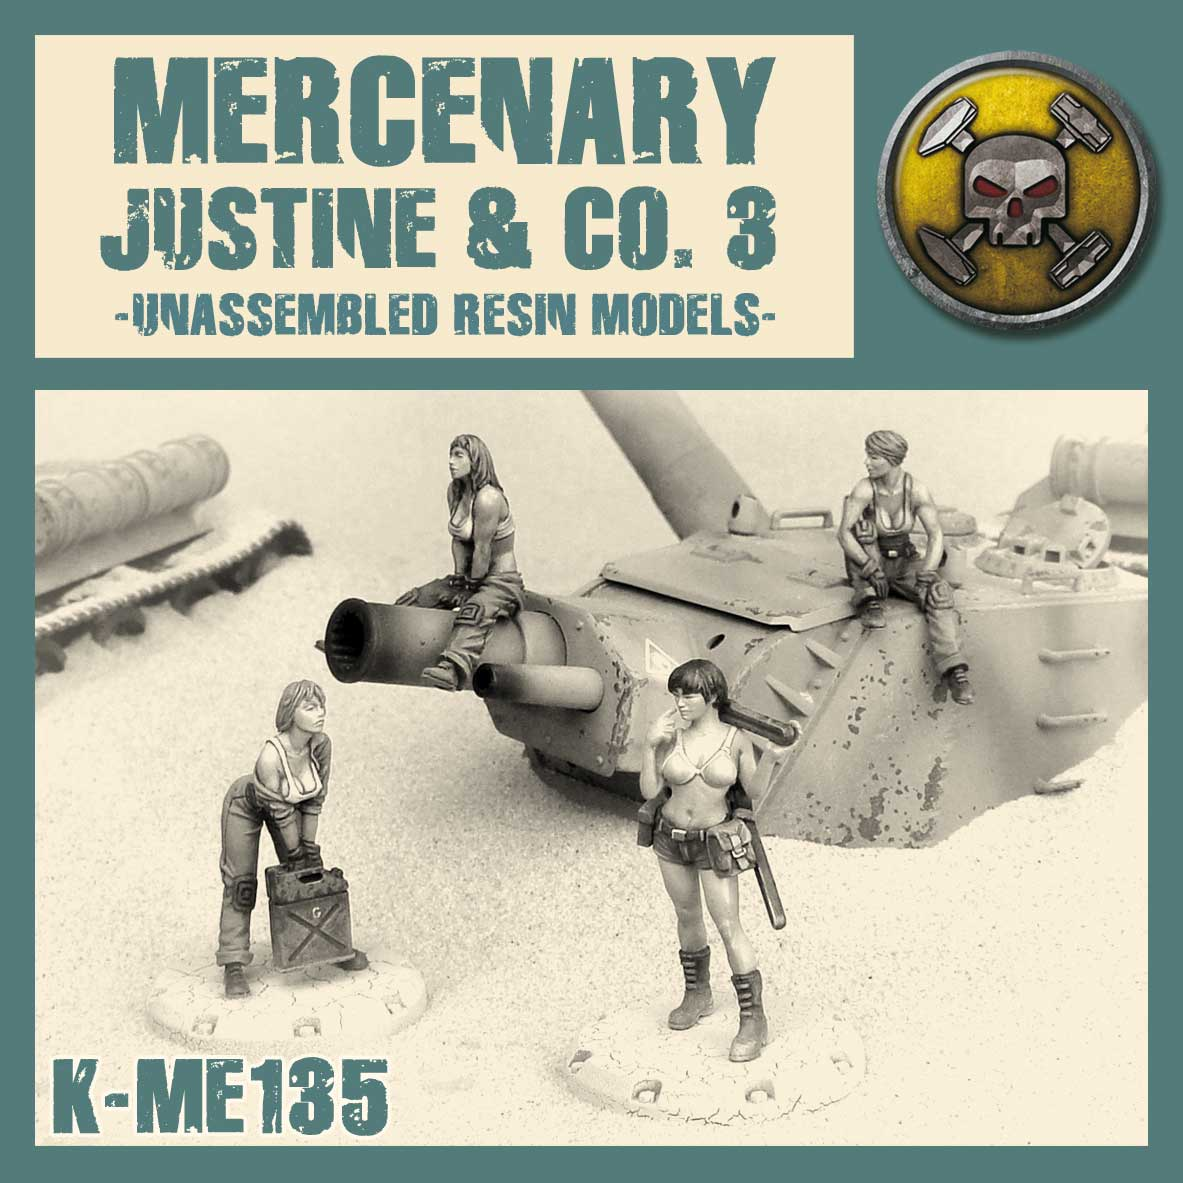 Justine & Co. Maintenance Contractors wz. 3 Kit